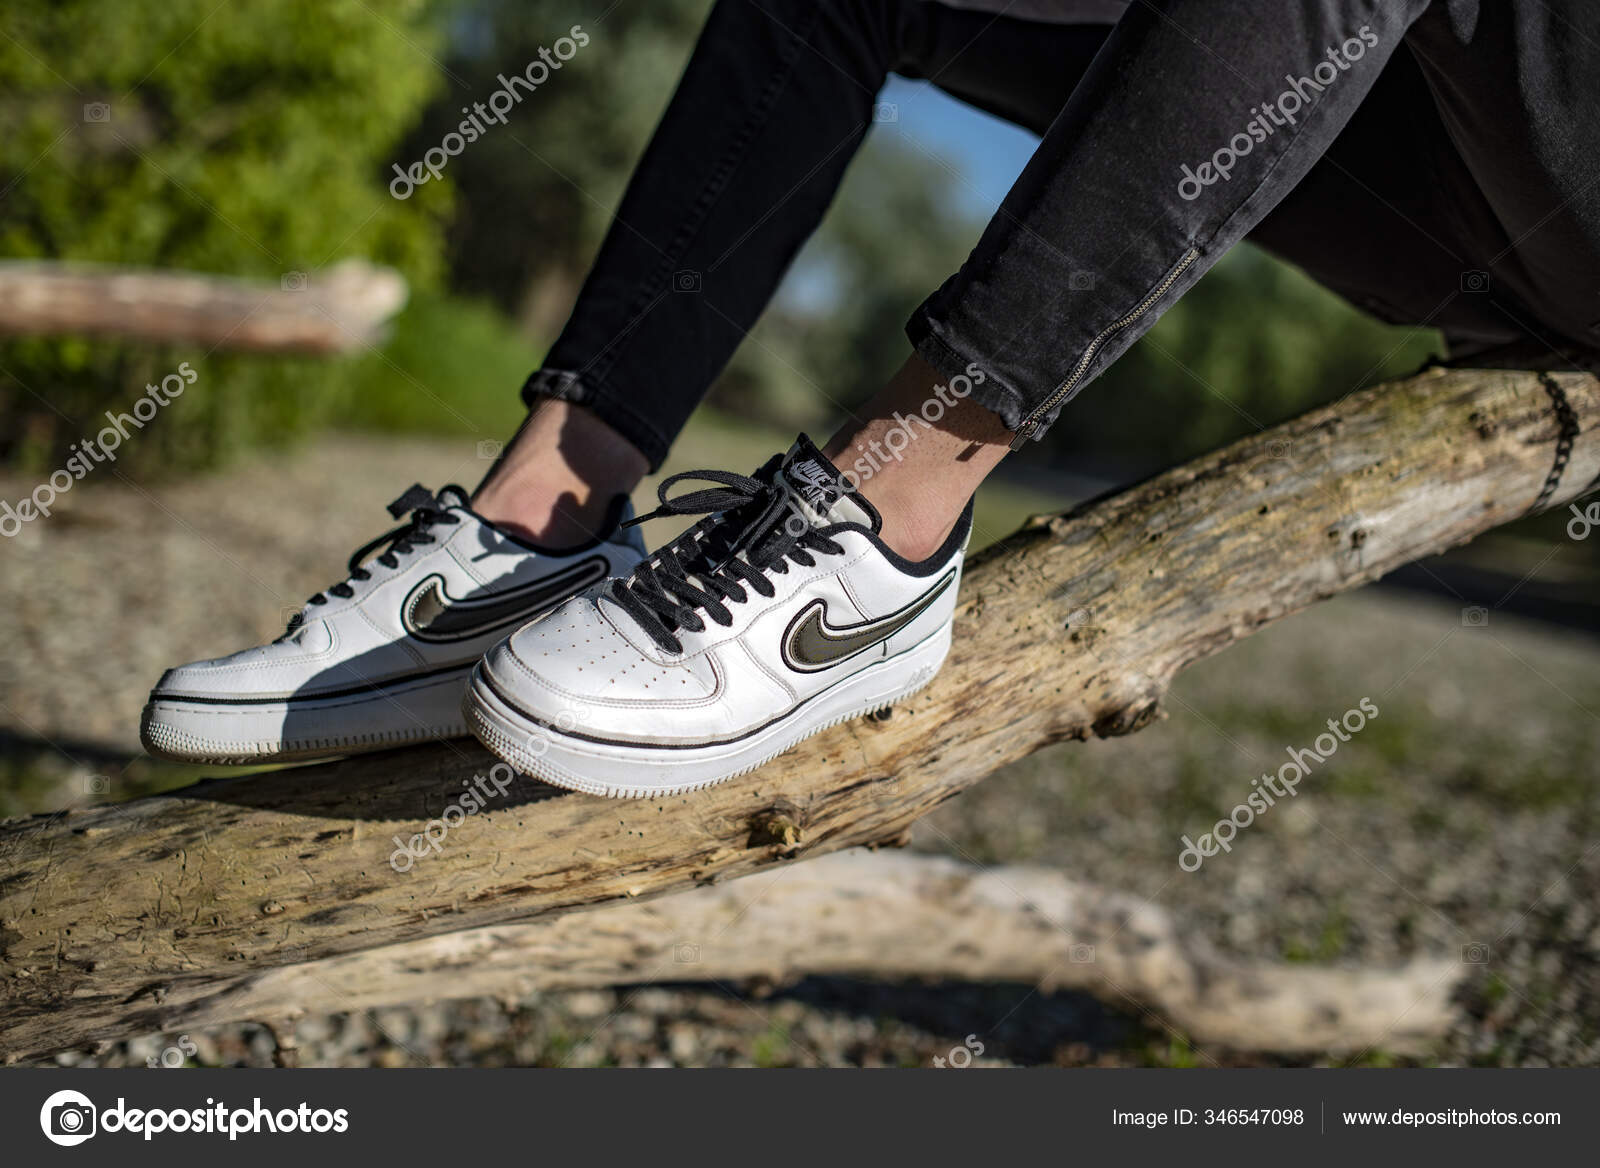 chaussure jeune homme nike